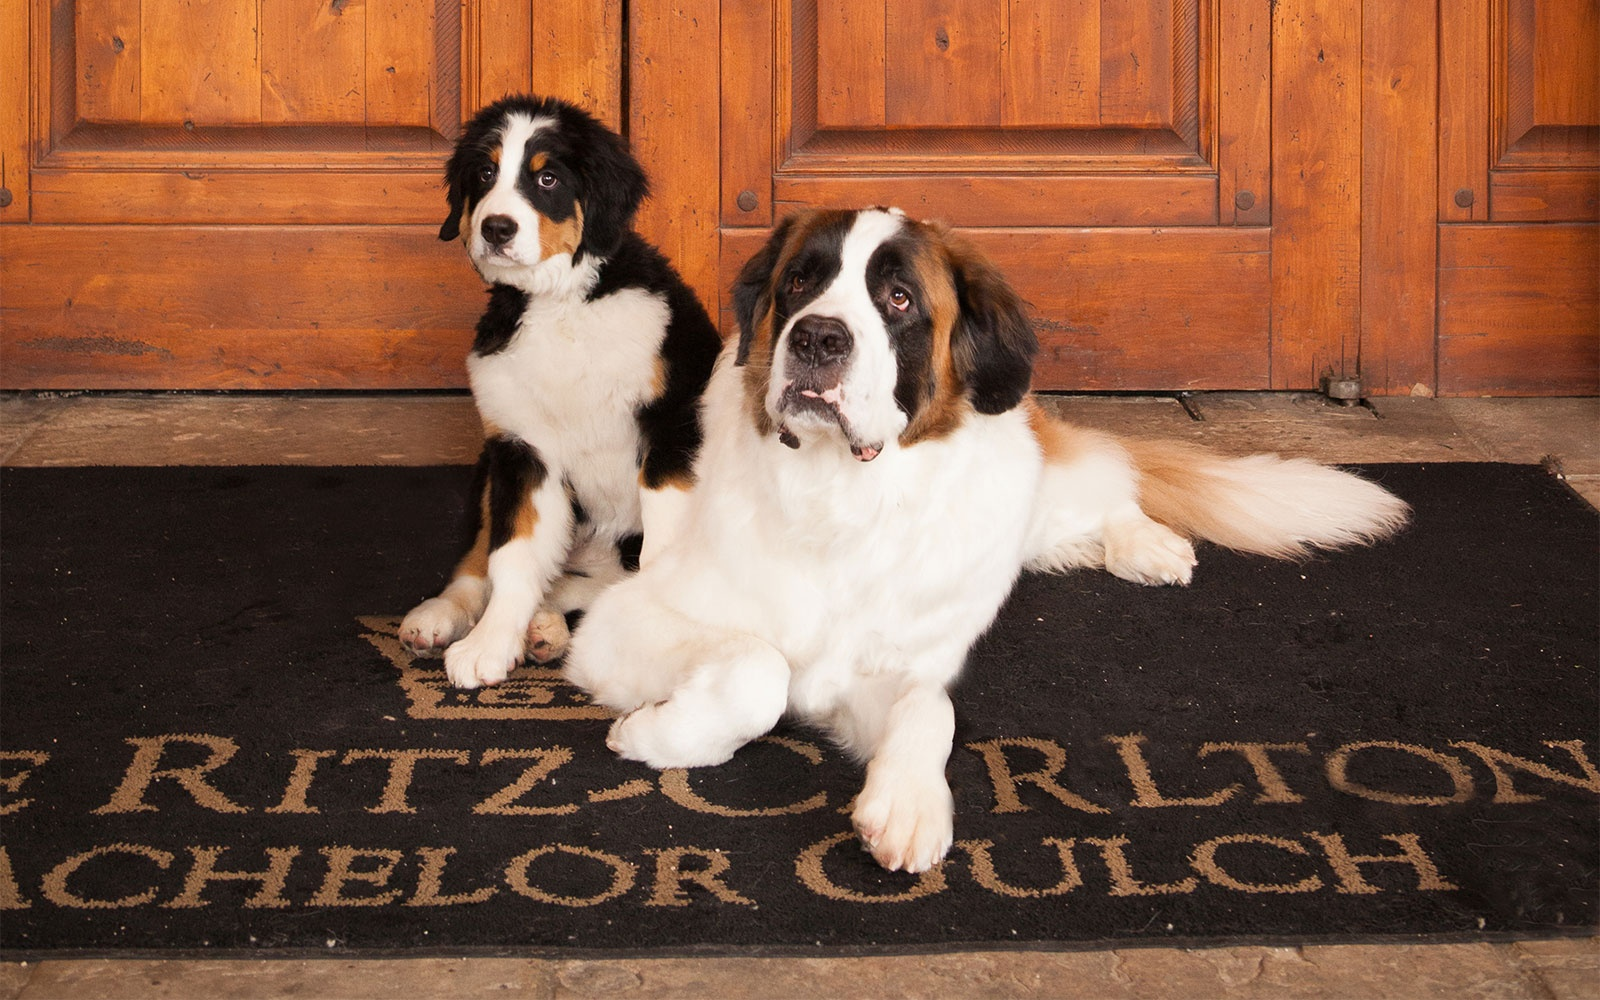 The Ritz-Carlton Bachelor Gulch PET FRIENDLY HOTEL